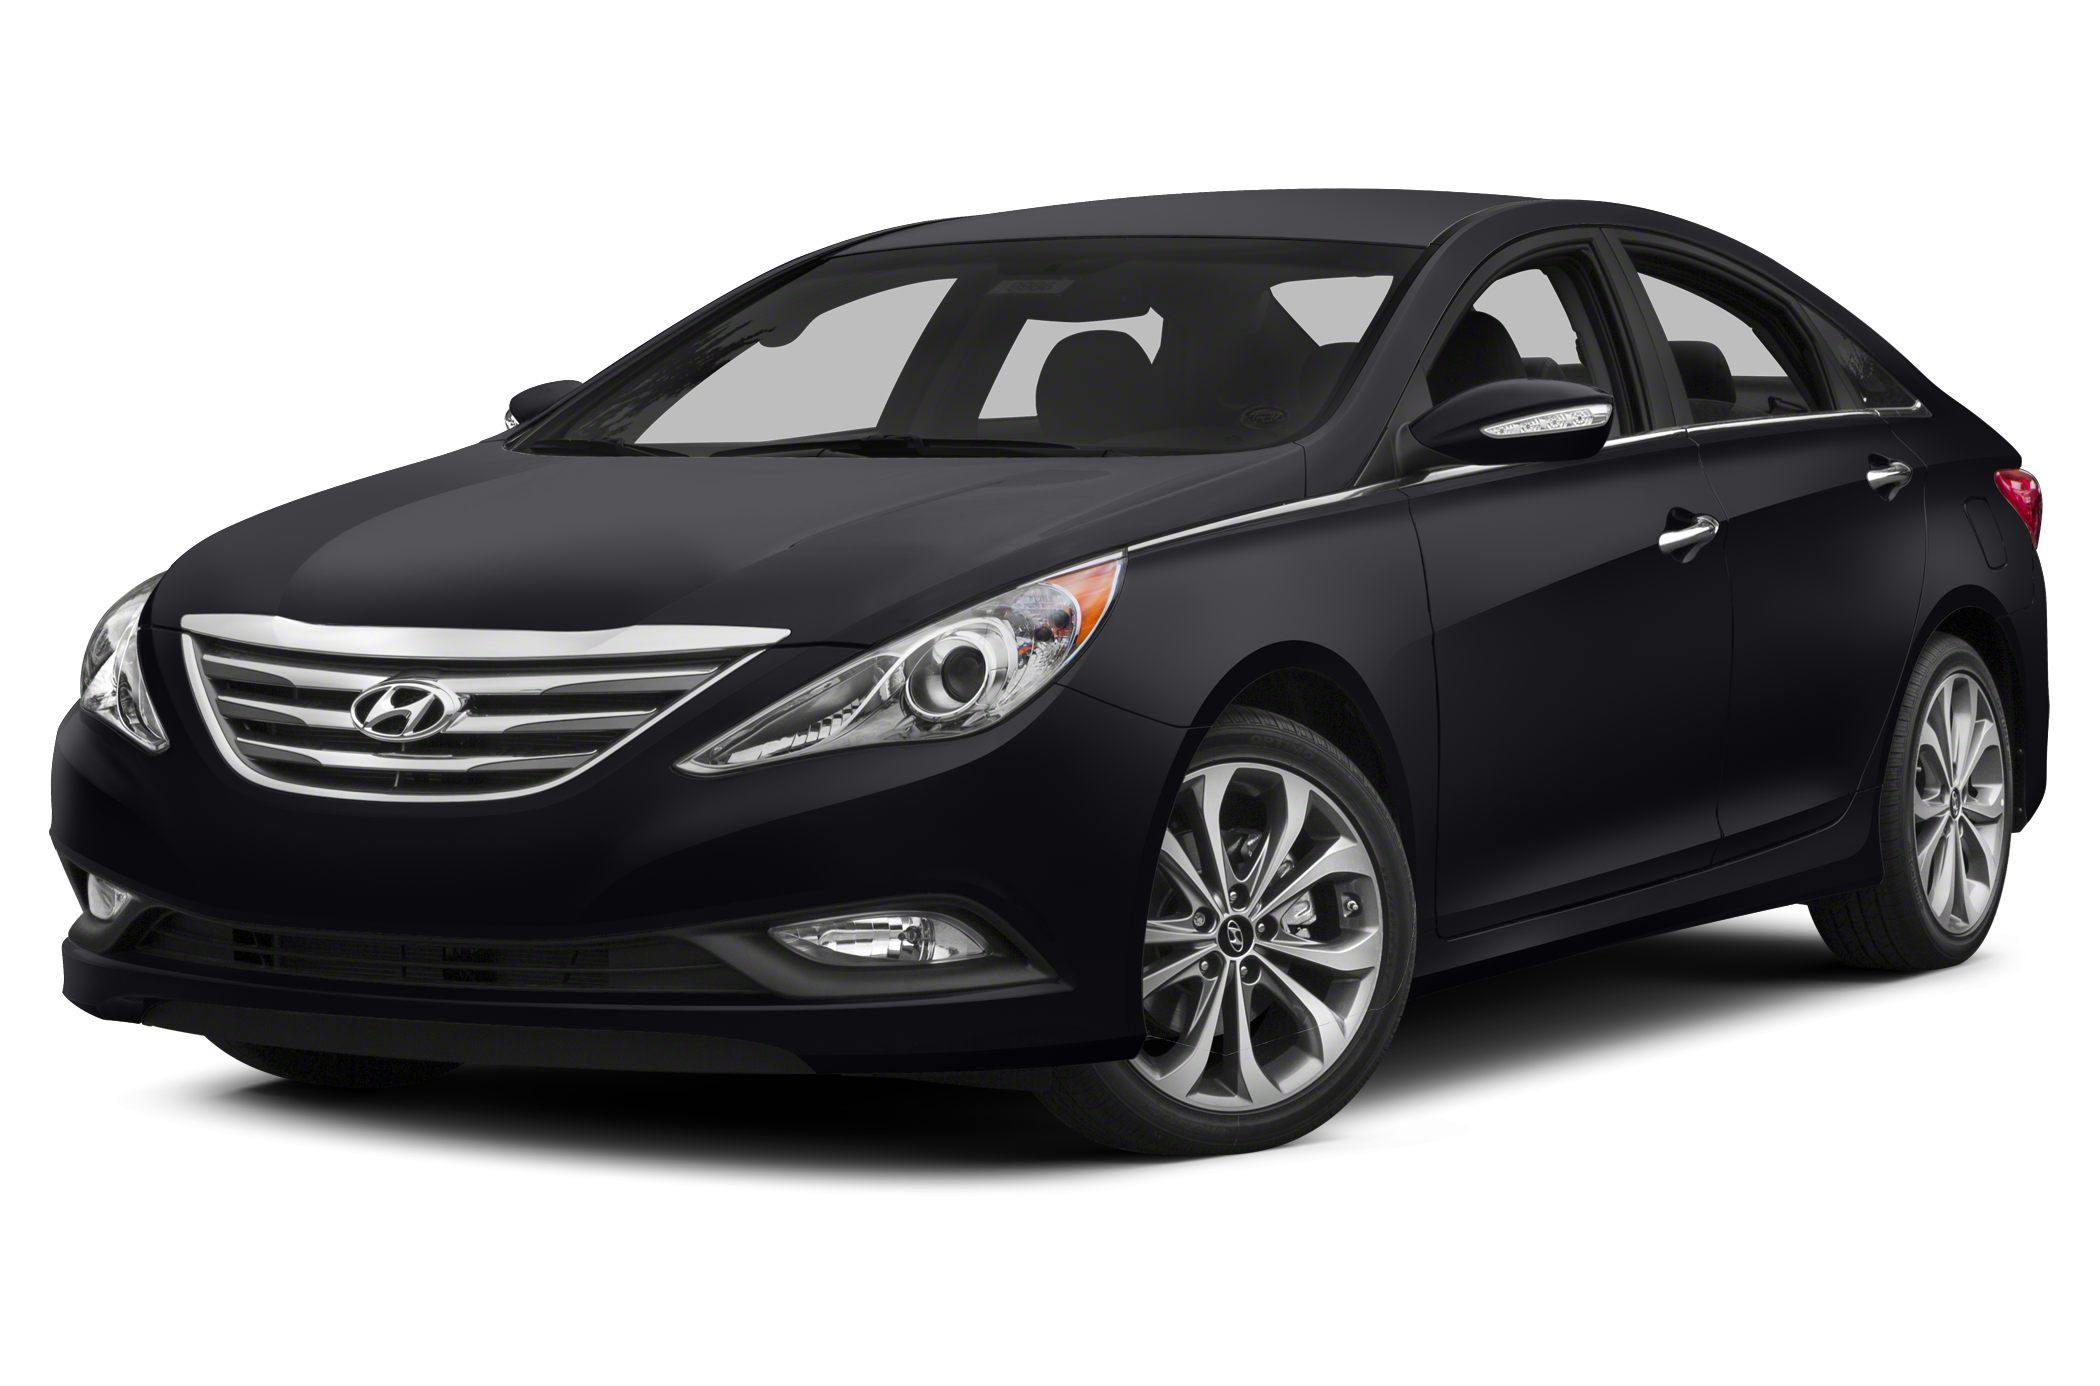 2014 Hyundai Sonata GLS Sedan for sale in Hattiesburg for $18,999 with 28,757 miles